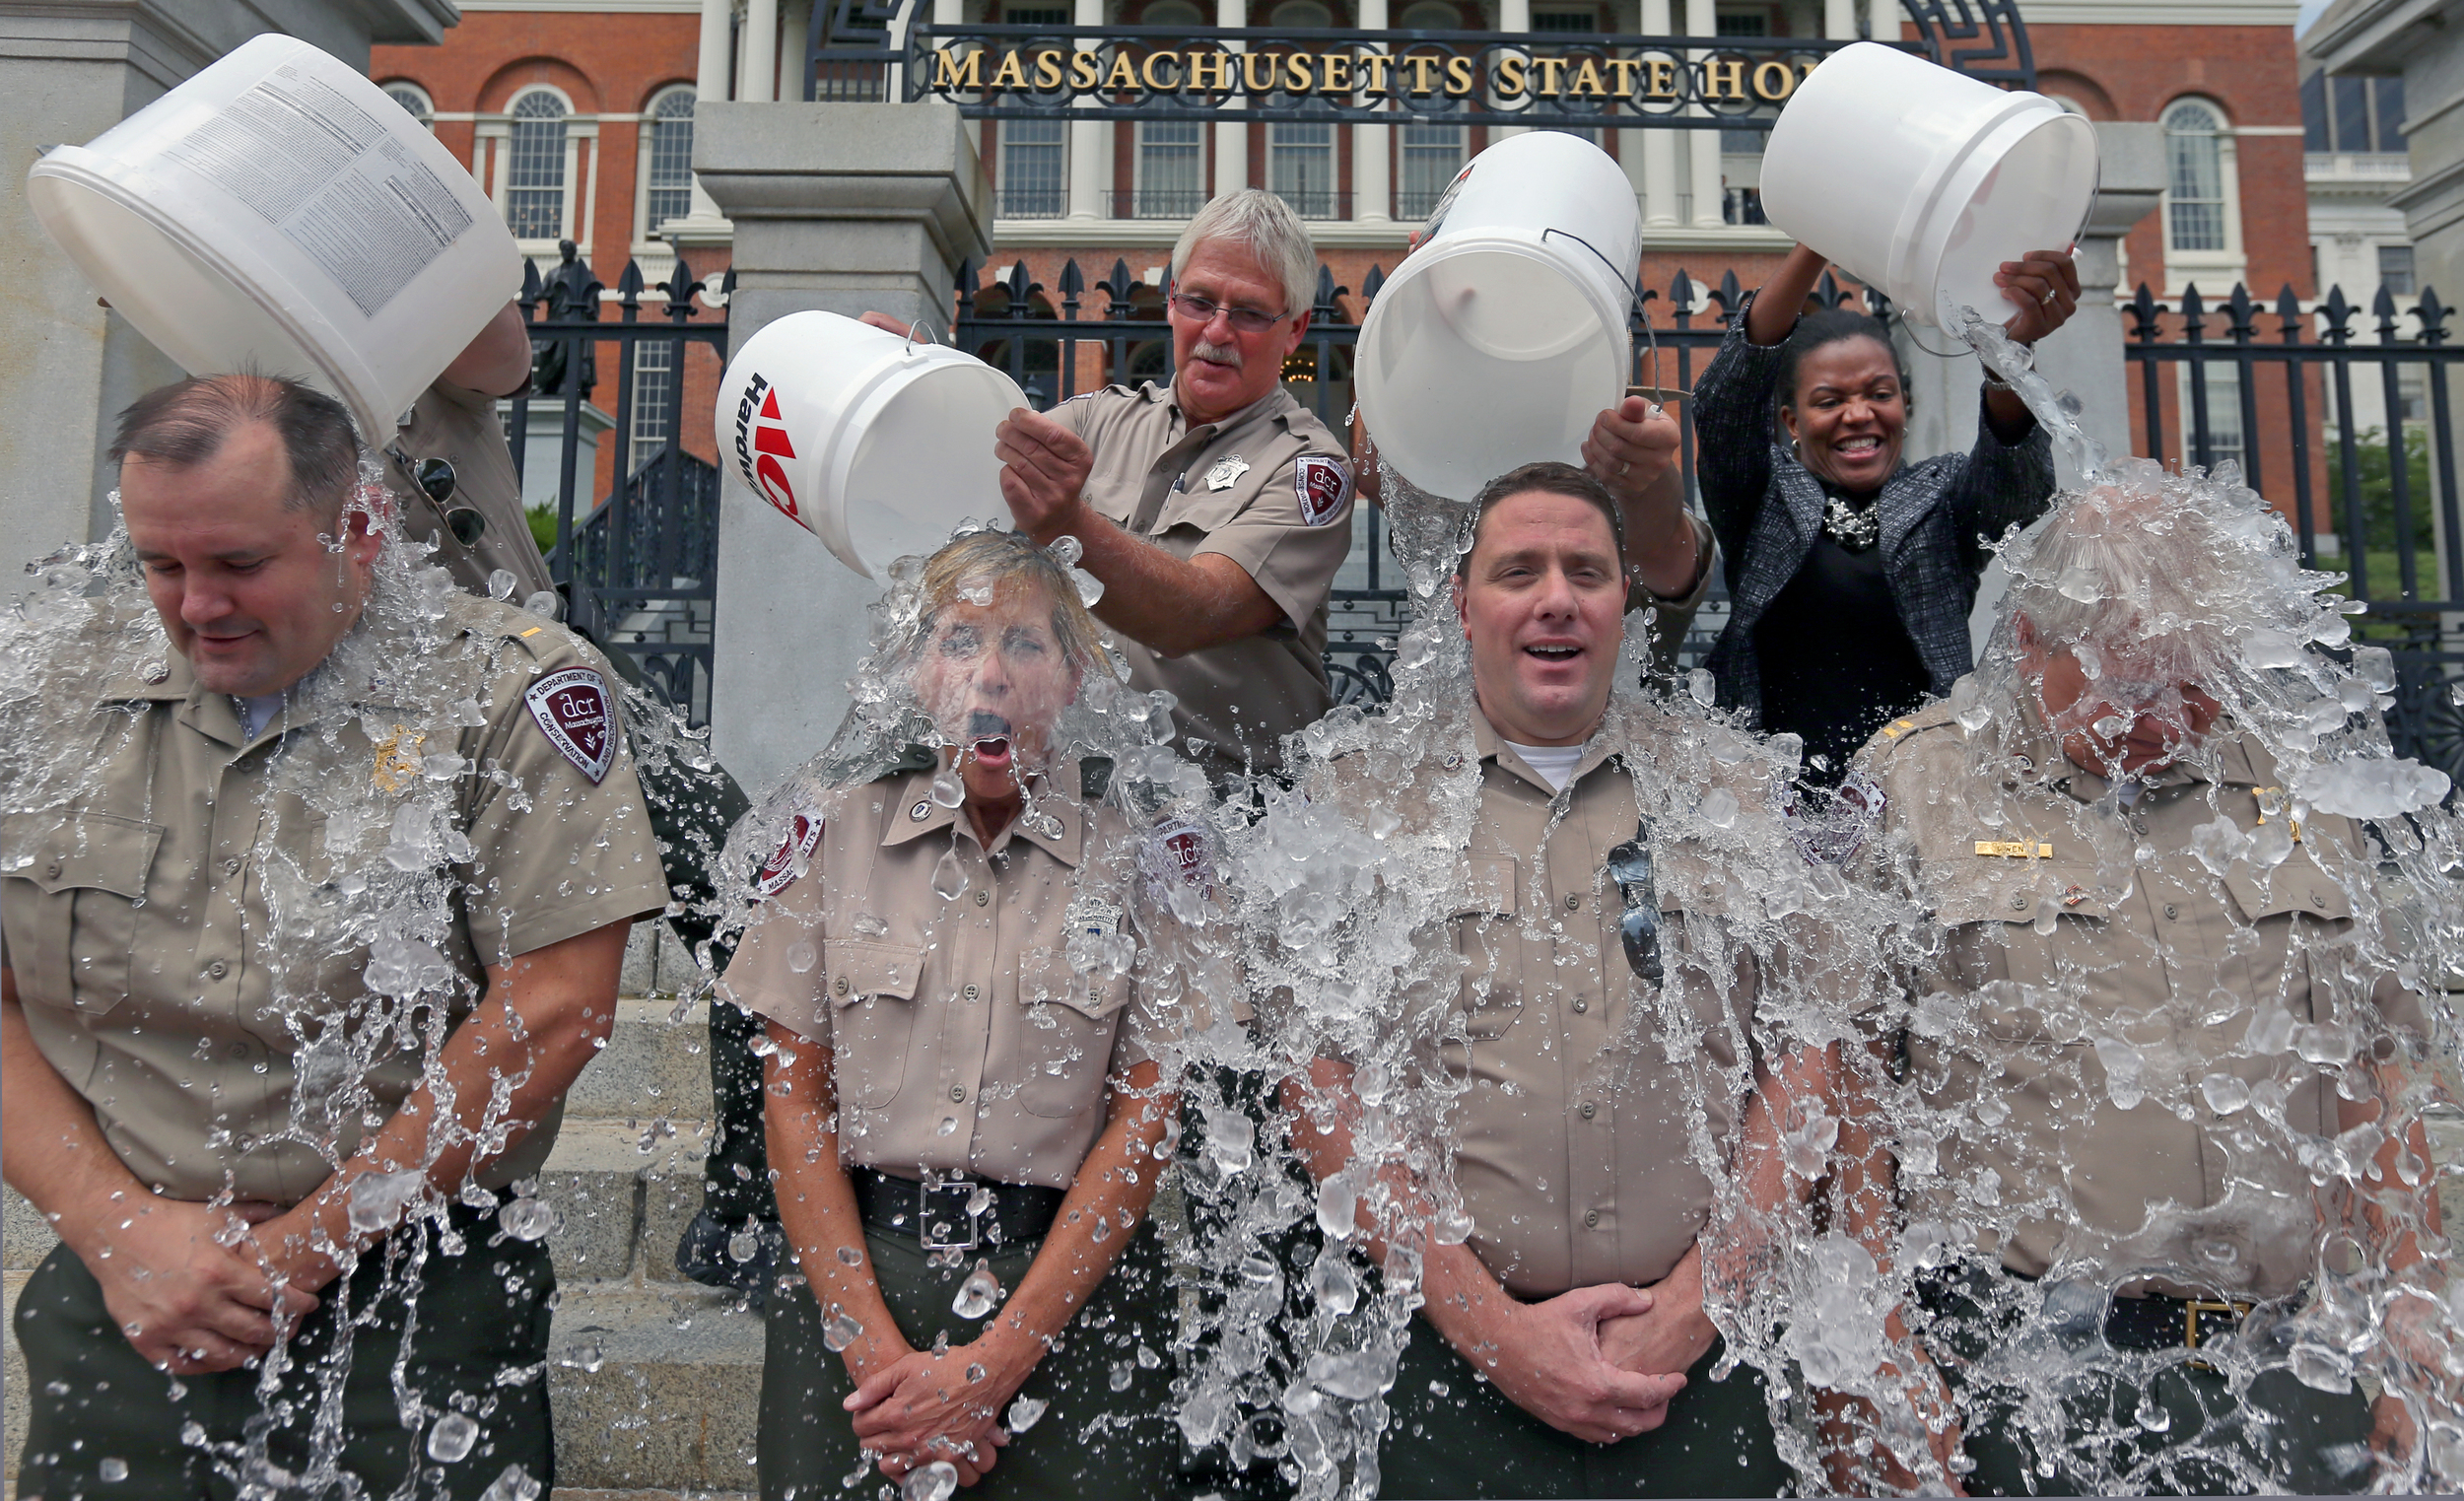 als ice bucket challenge The ice bucket challenge, a campaign to raise money to fight lou gehrig's disease, has caught fire on social media, with celebrities drenching themselves in ice water.